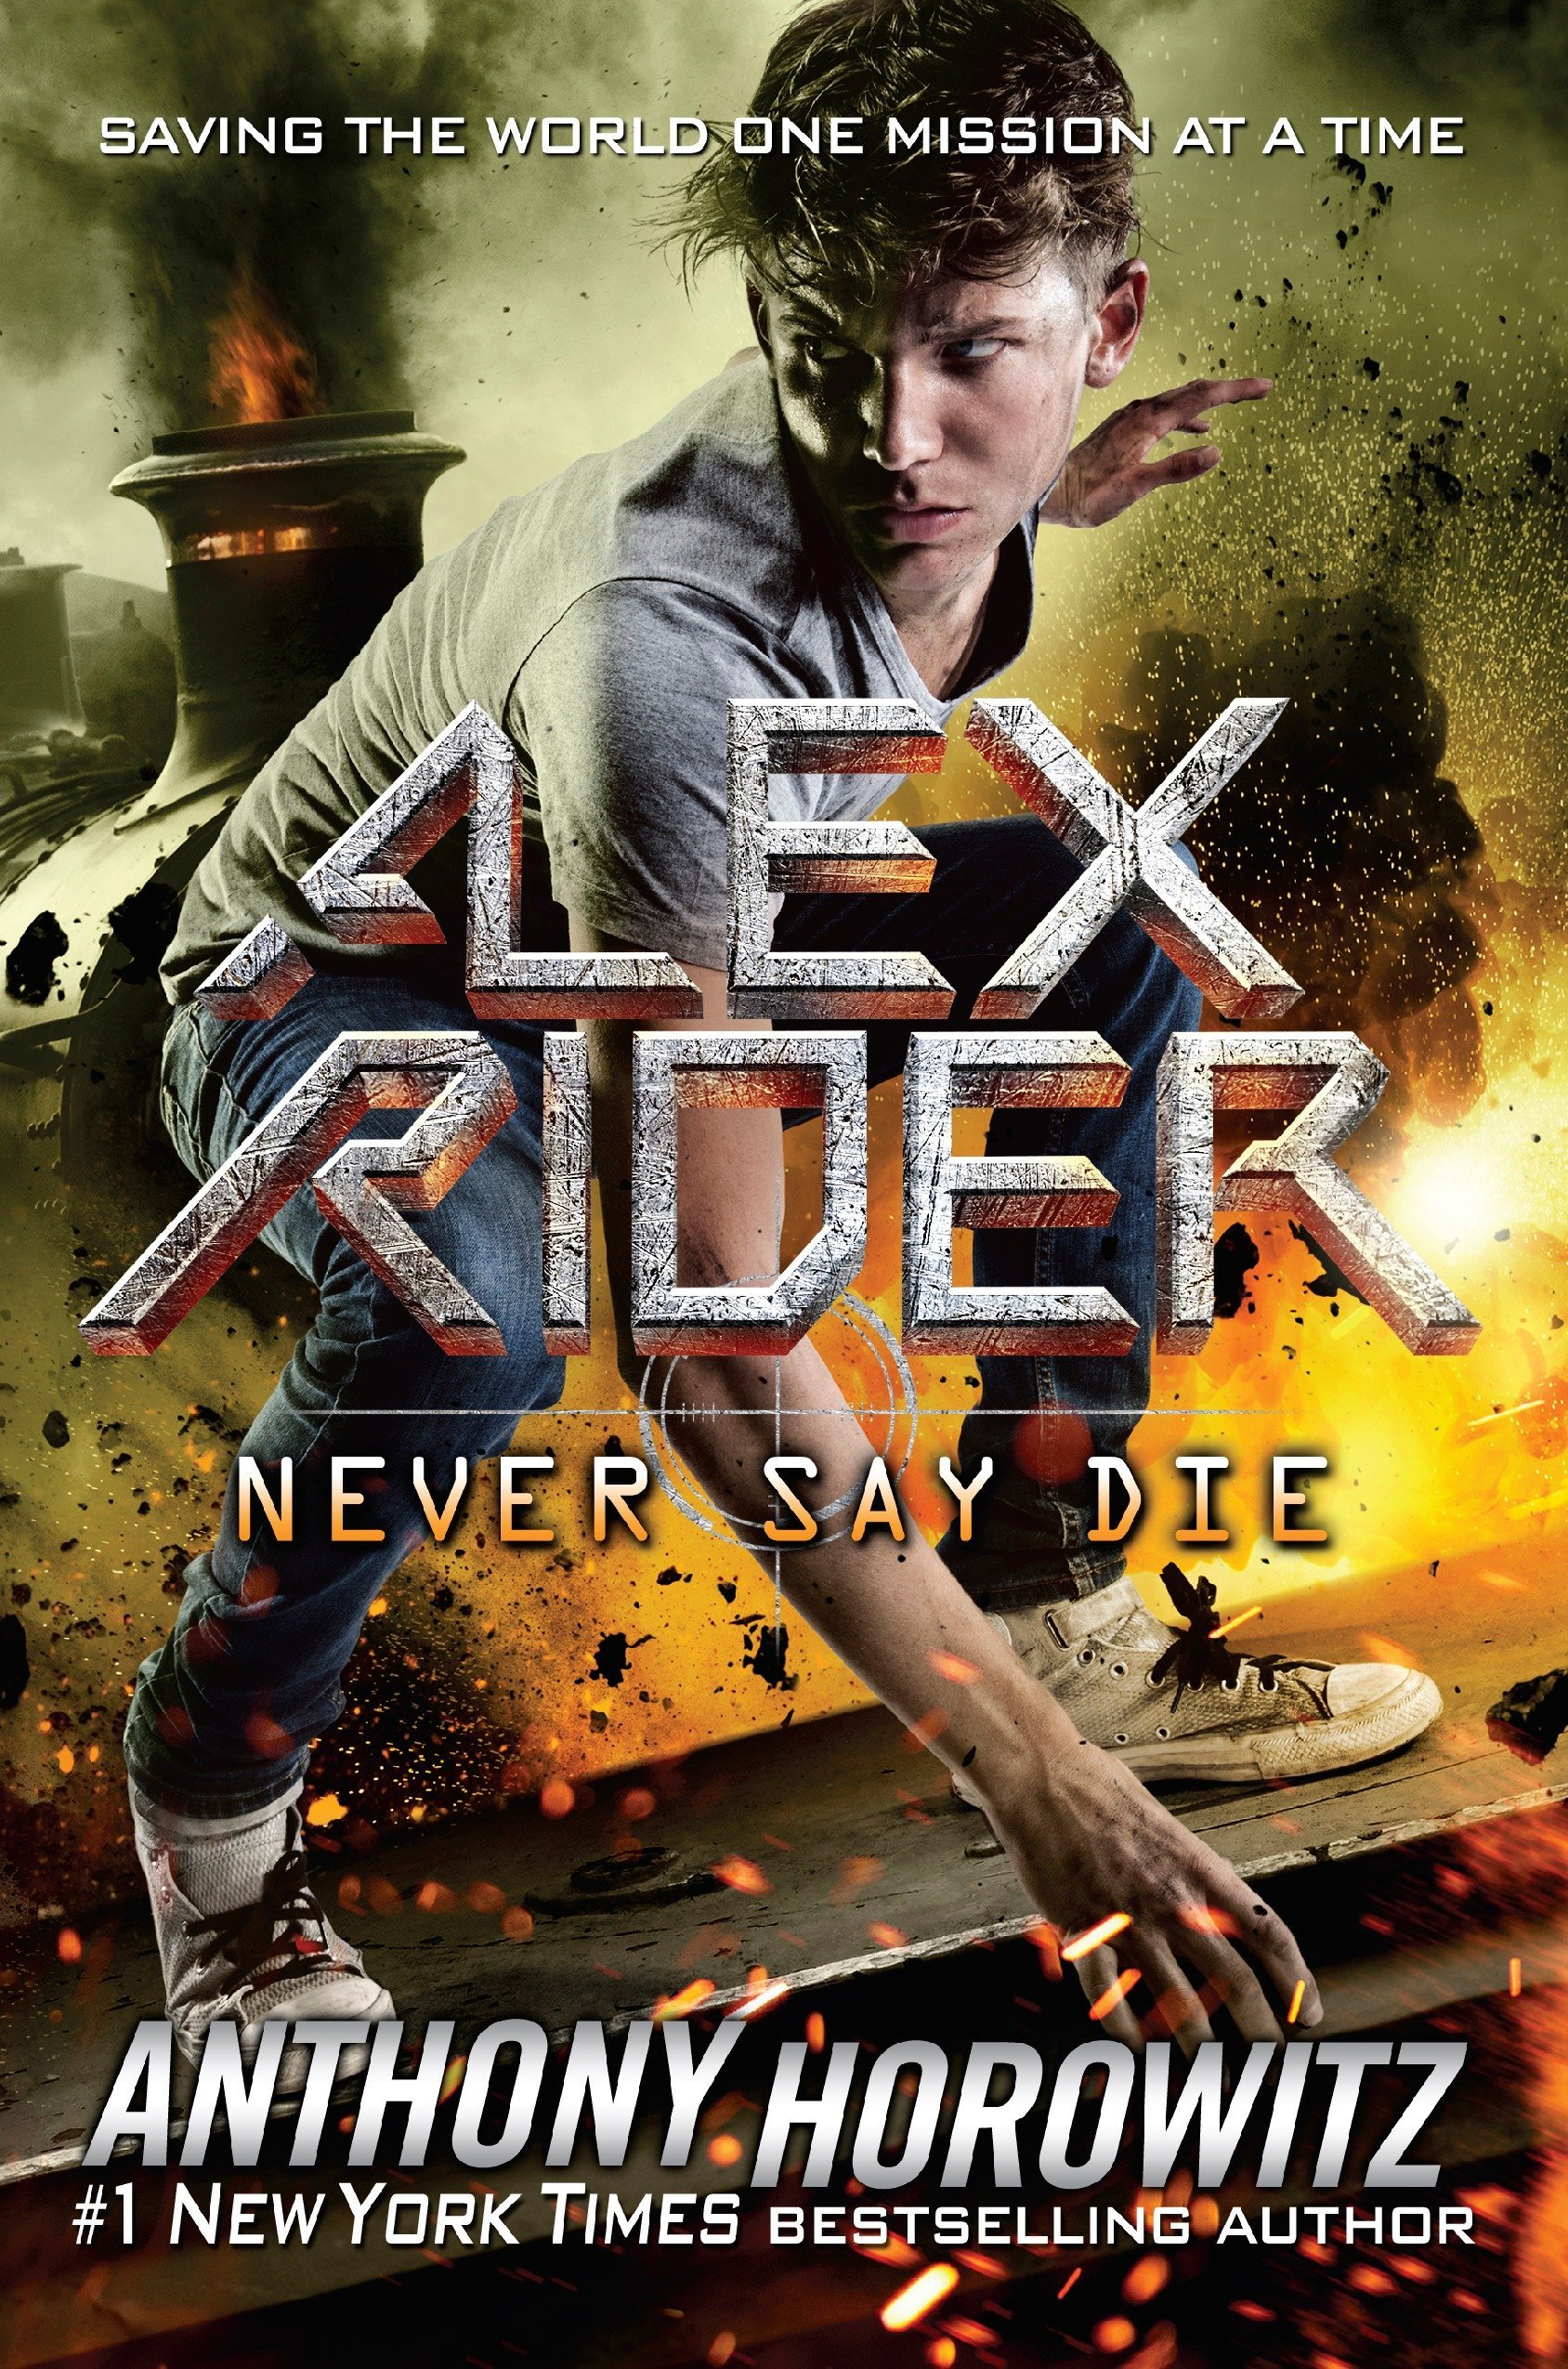 Never Say Die Alex Rider Horowitz Anthony 9781524739300 Books Amazon Ca